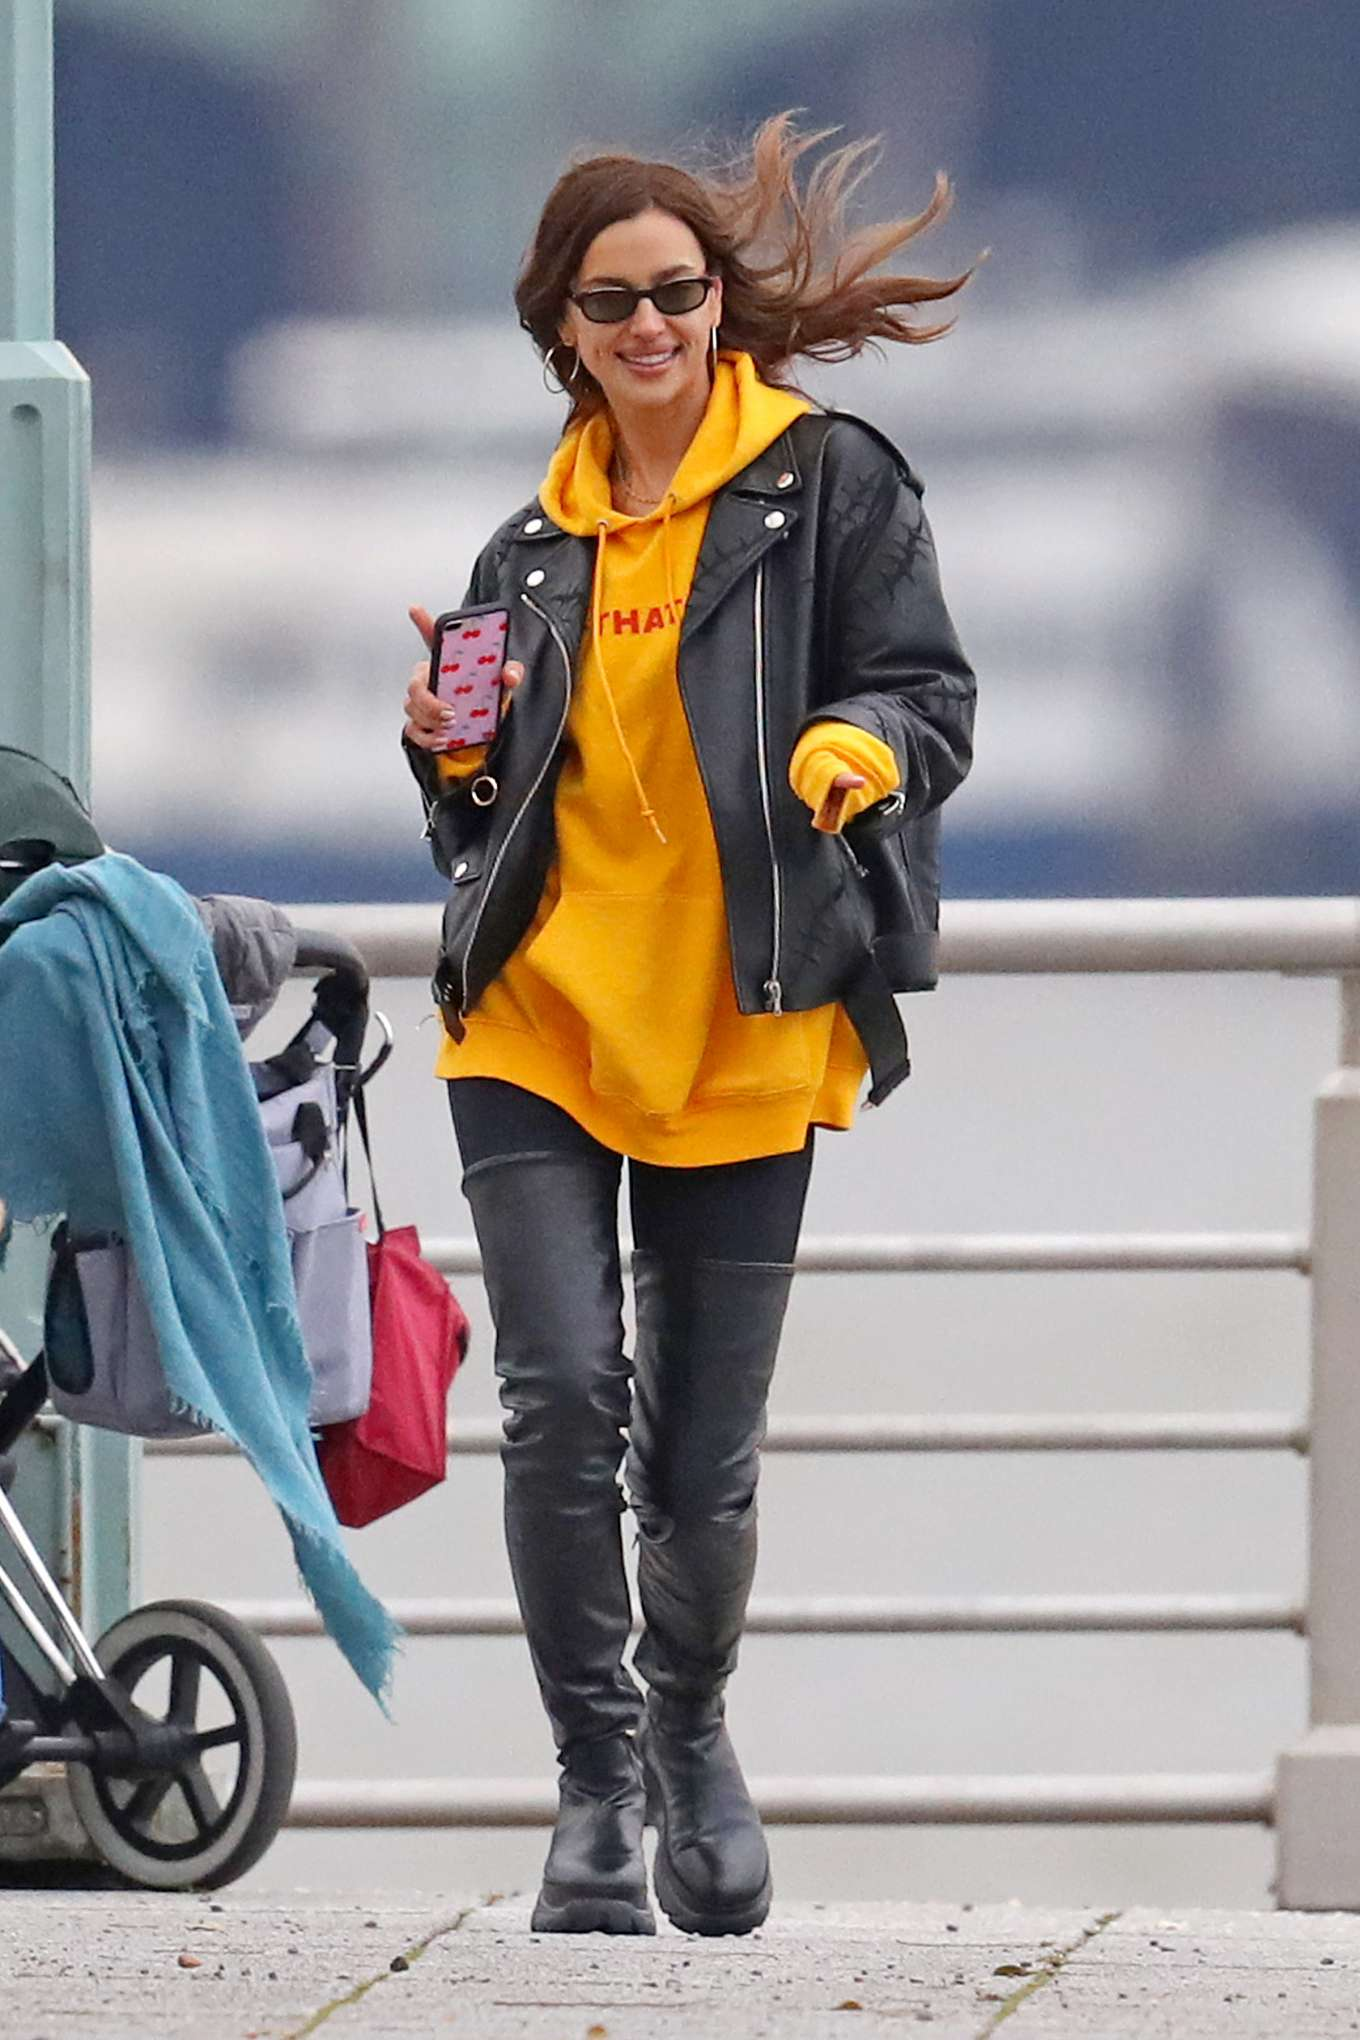 Irina Shayk in Leather Jacket and Hight Boots - Out in New York